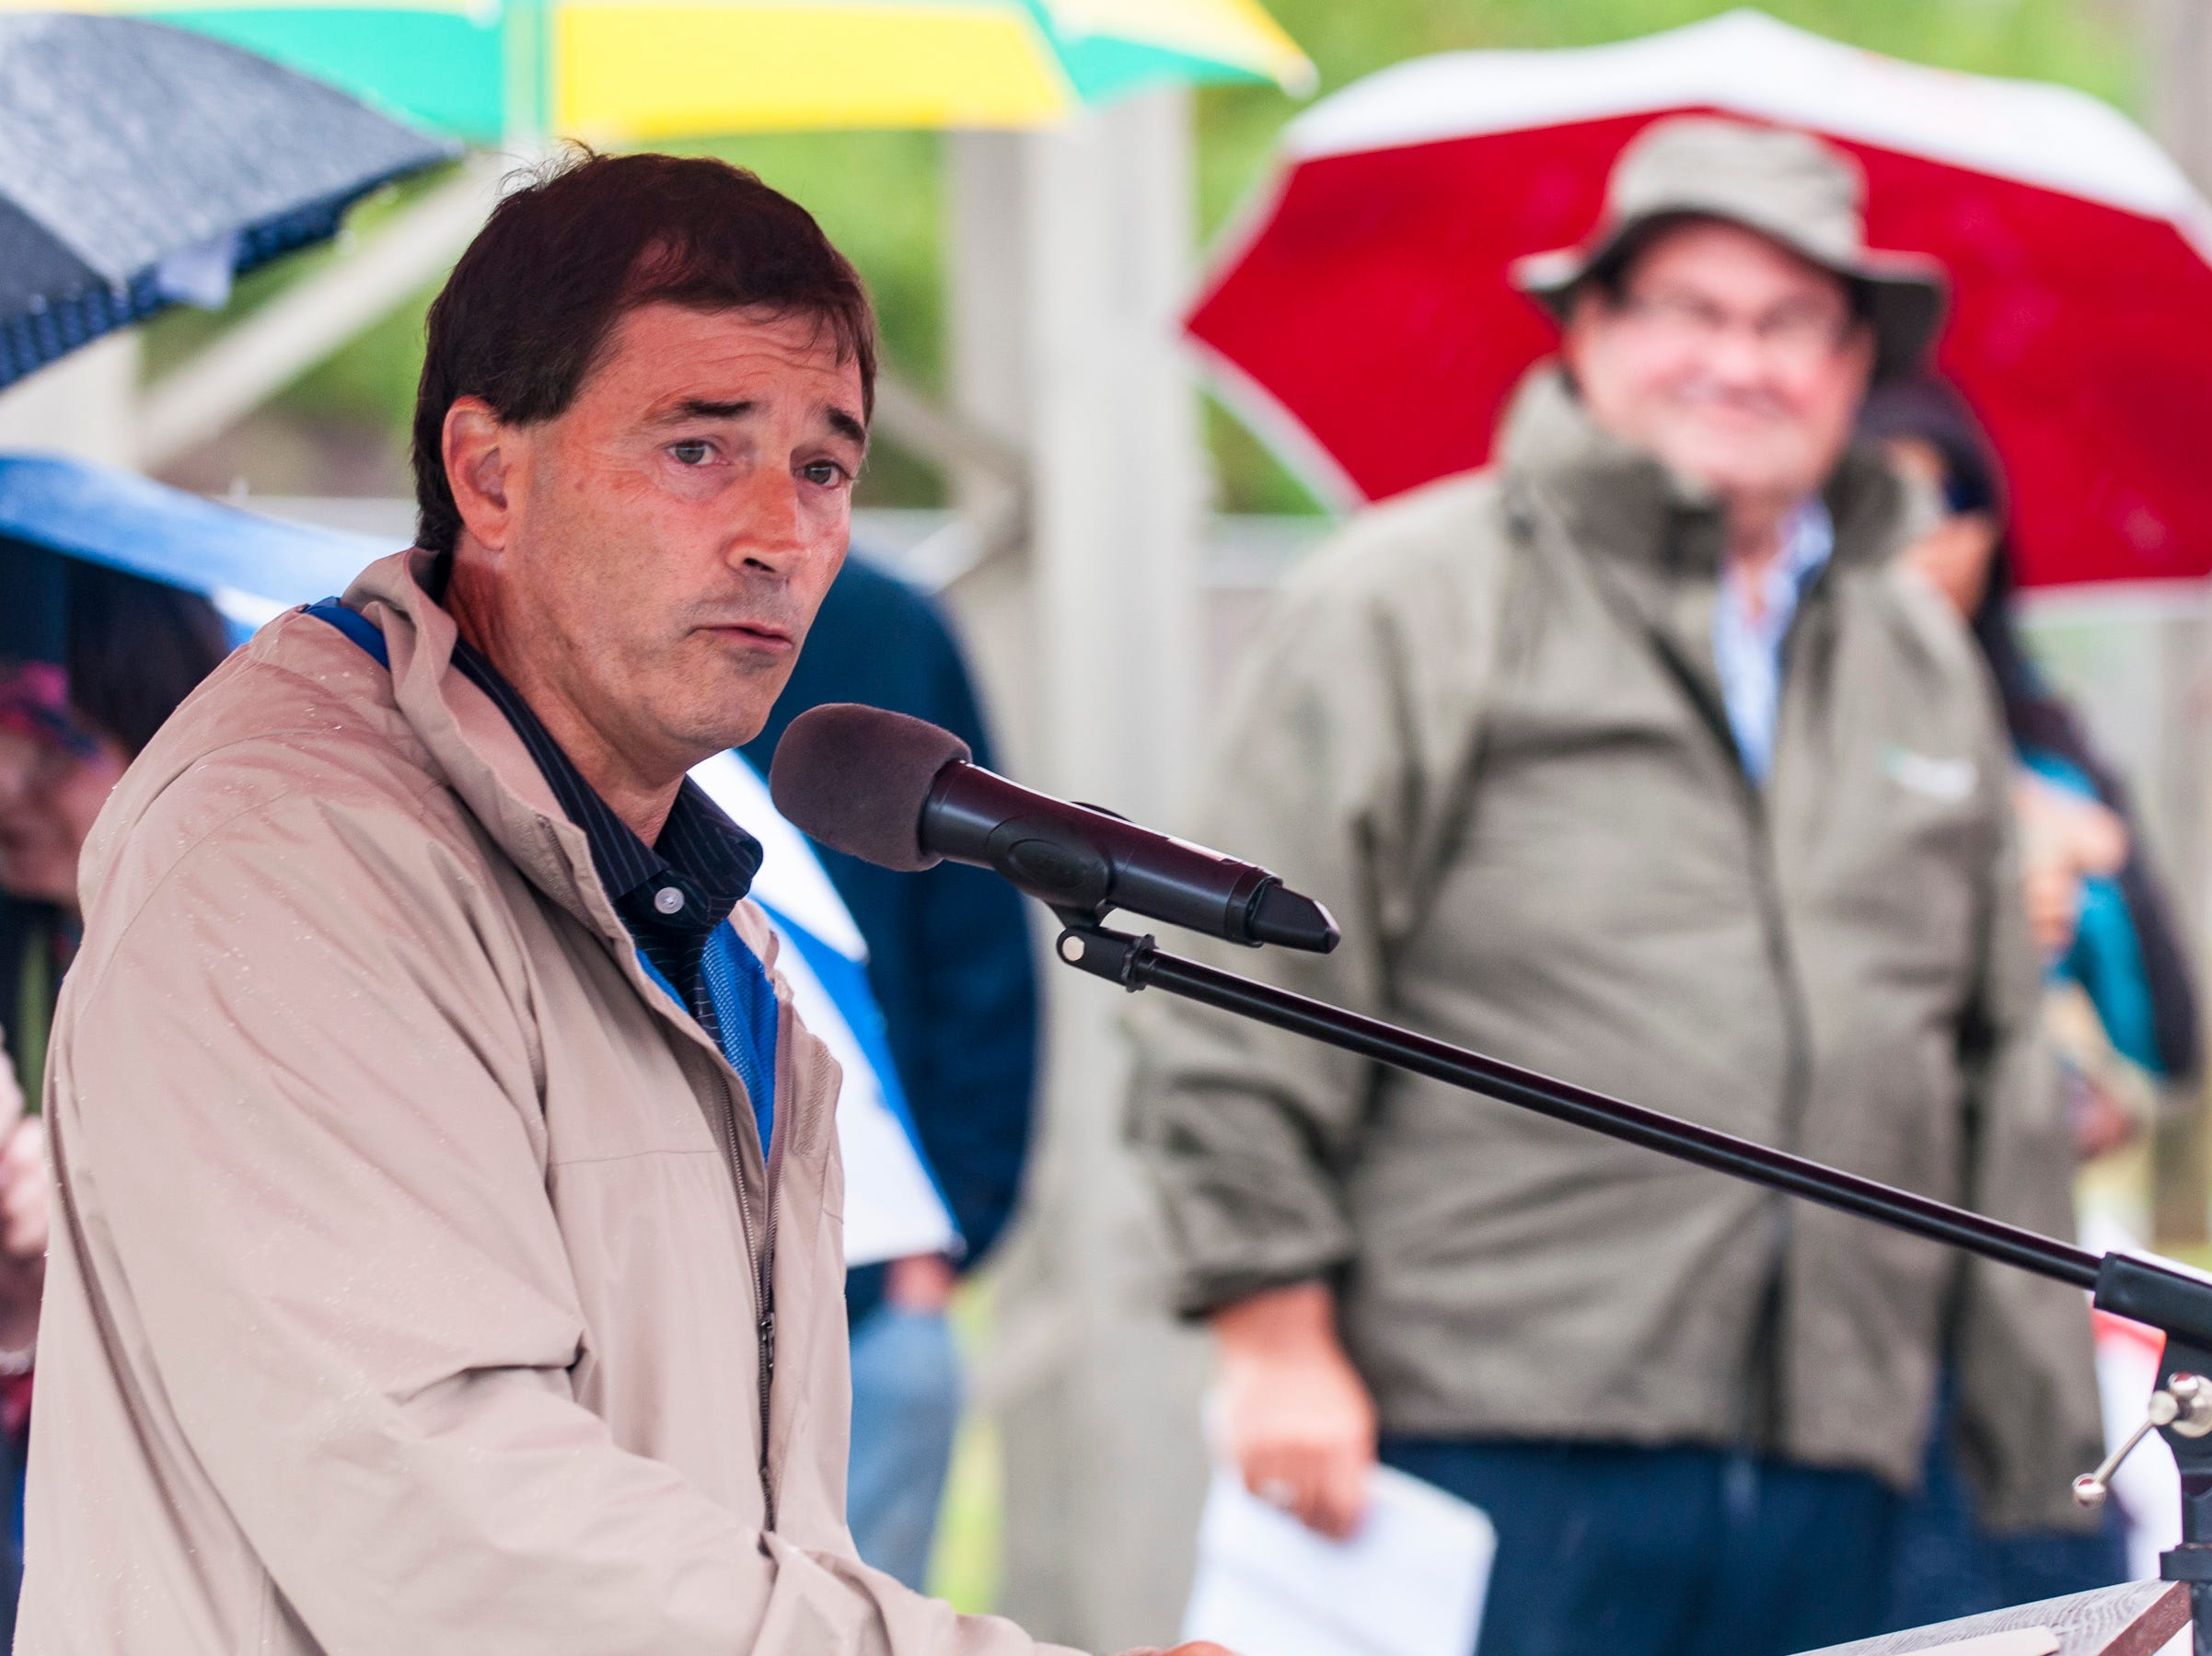 U.S. Representative Troy Balderson speaks during a ceremony held Saturday to unveil the newly restored totem pole placed near Truck One in Newark, Ohio.